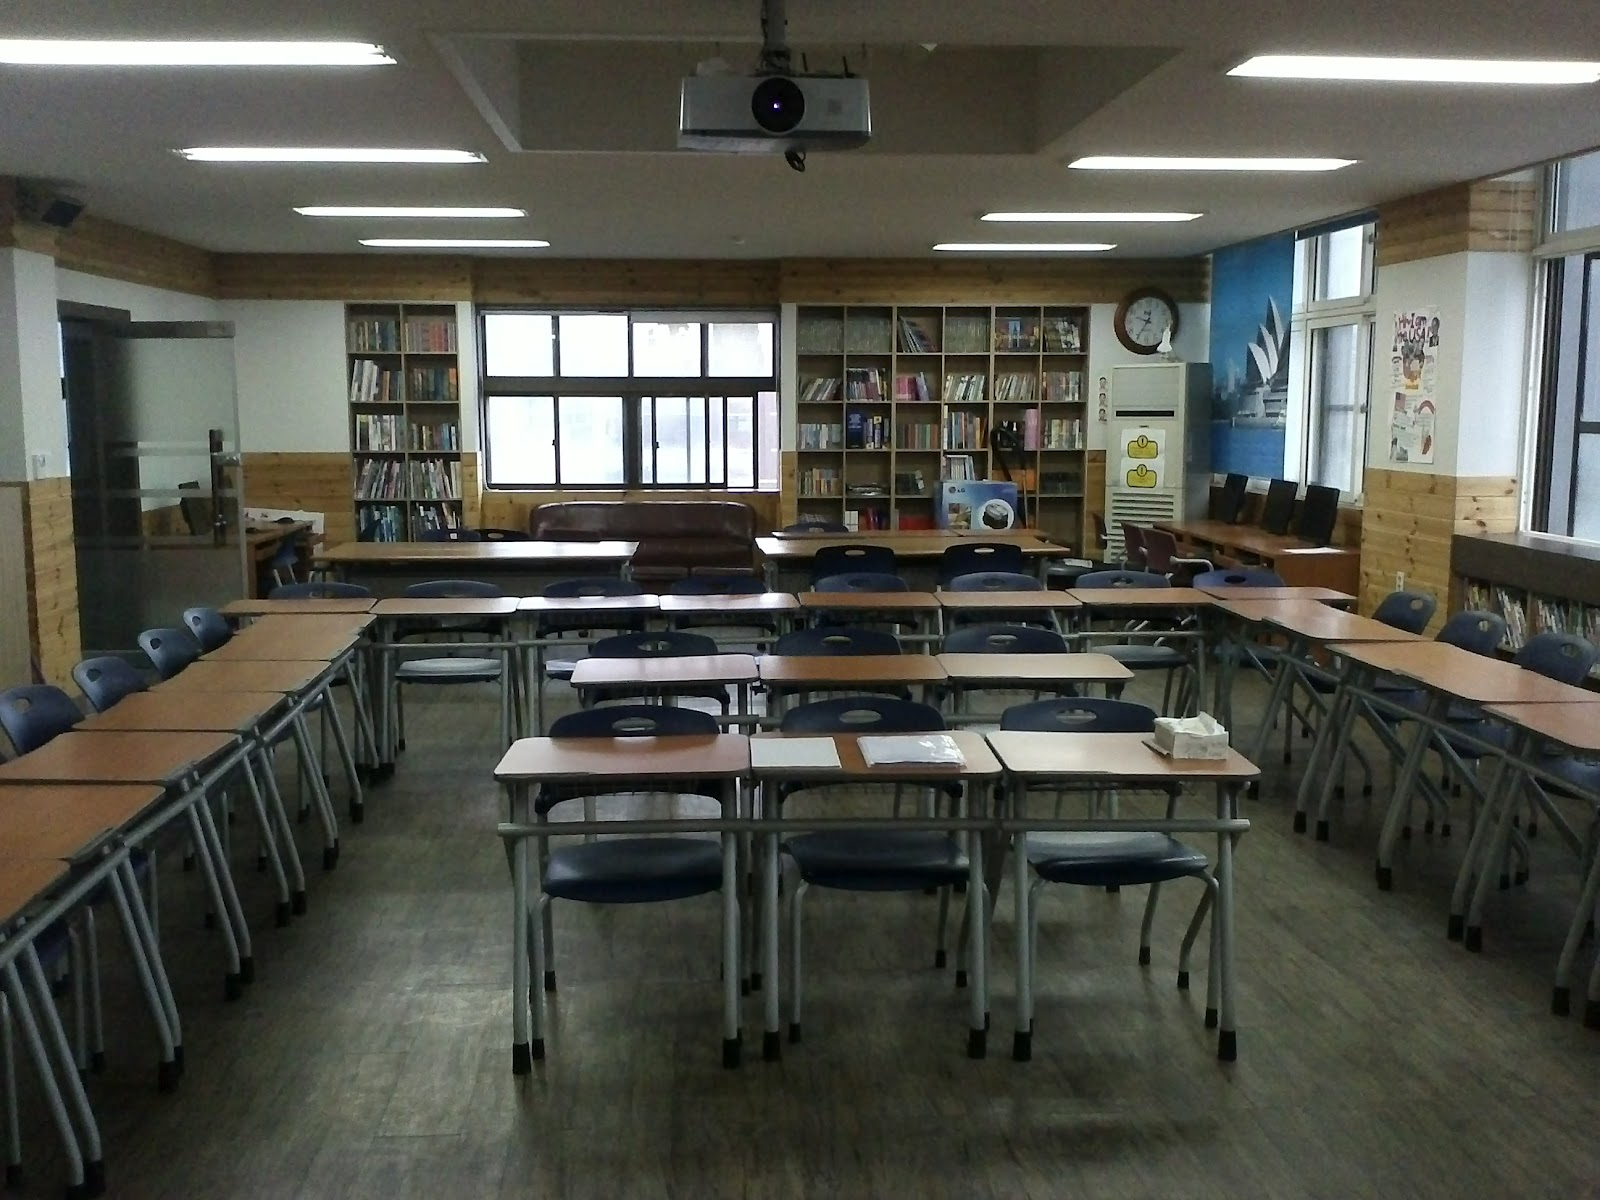 Z Arrangement Classroom Design Disadvantages ~ Classroom seating arrangements advantages and